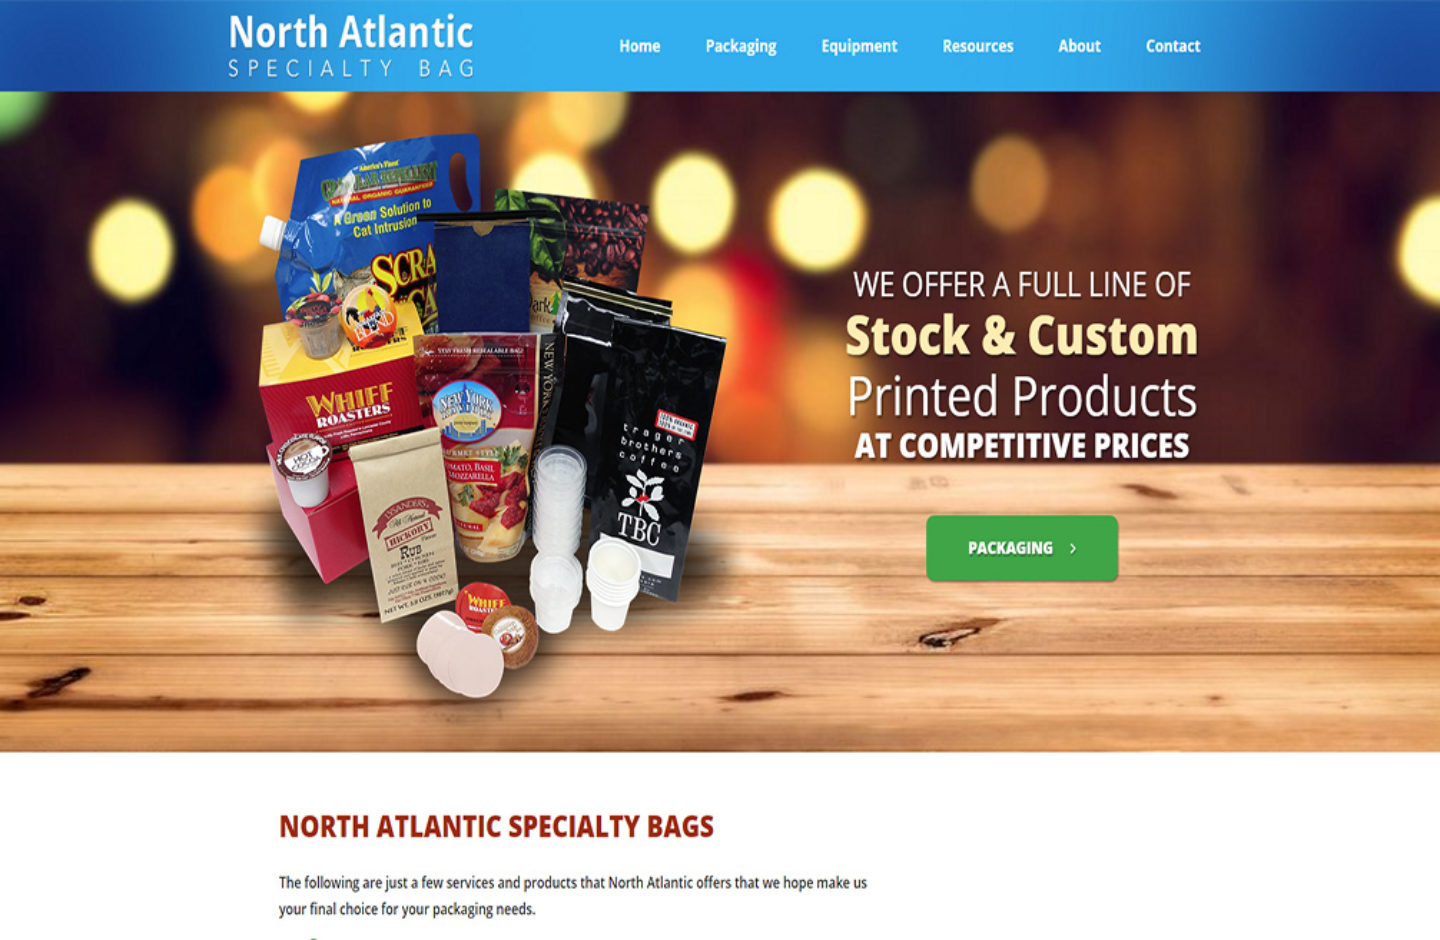 North Atlantic Specialty Bags